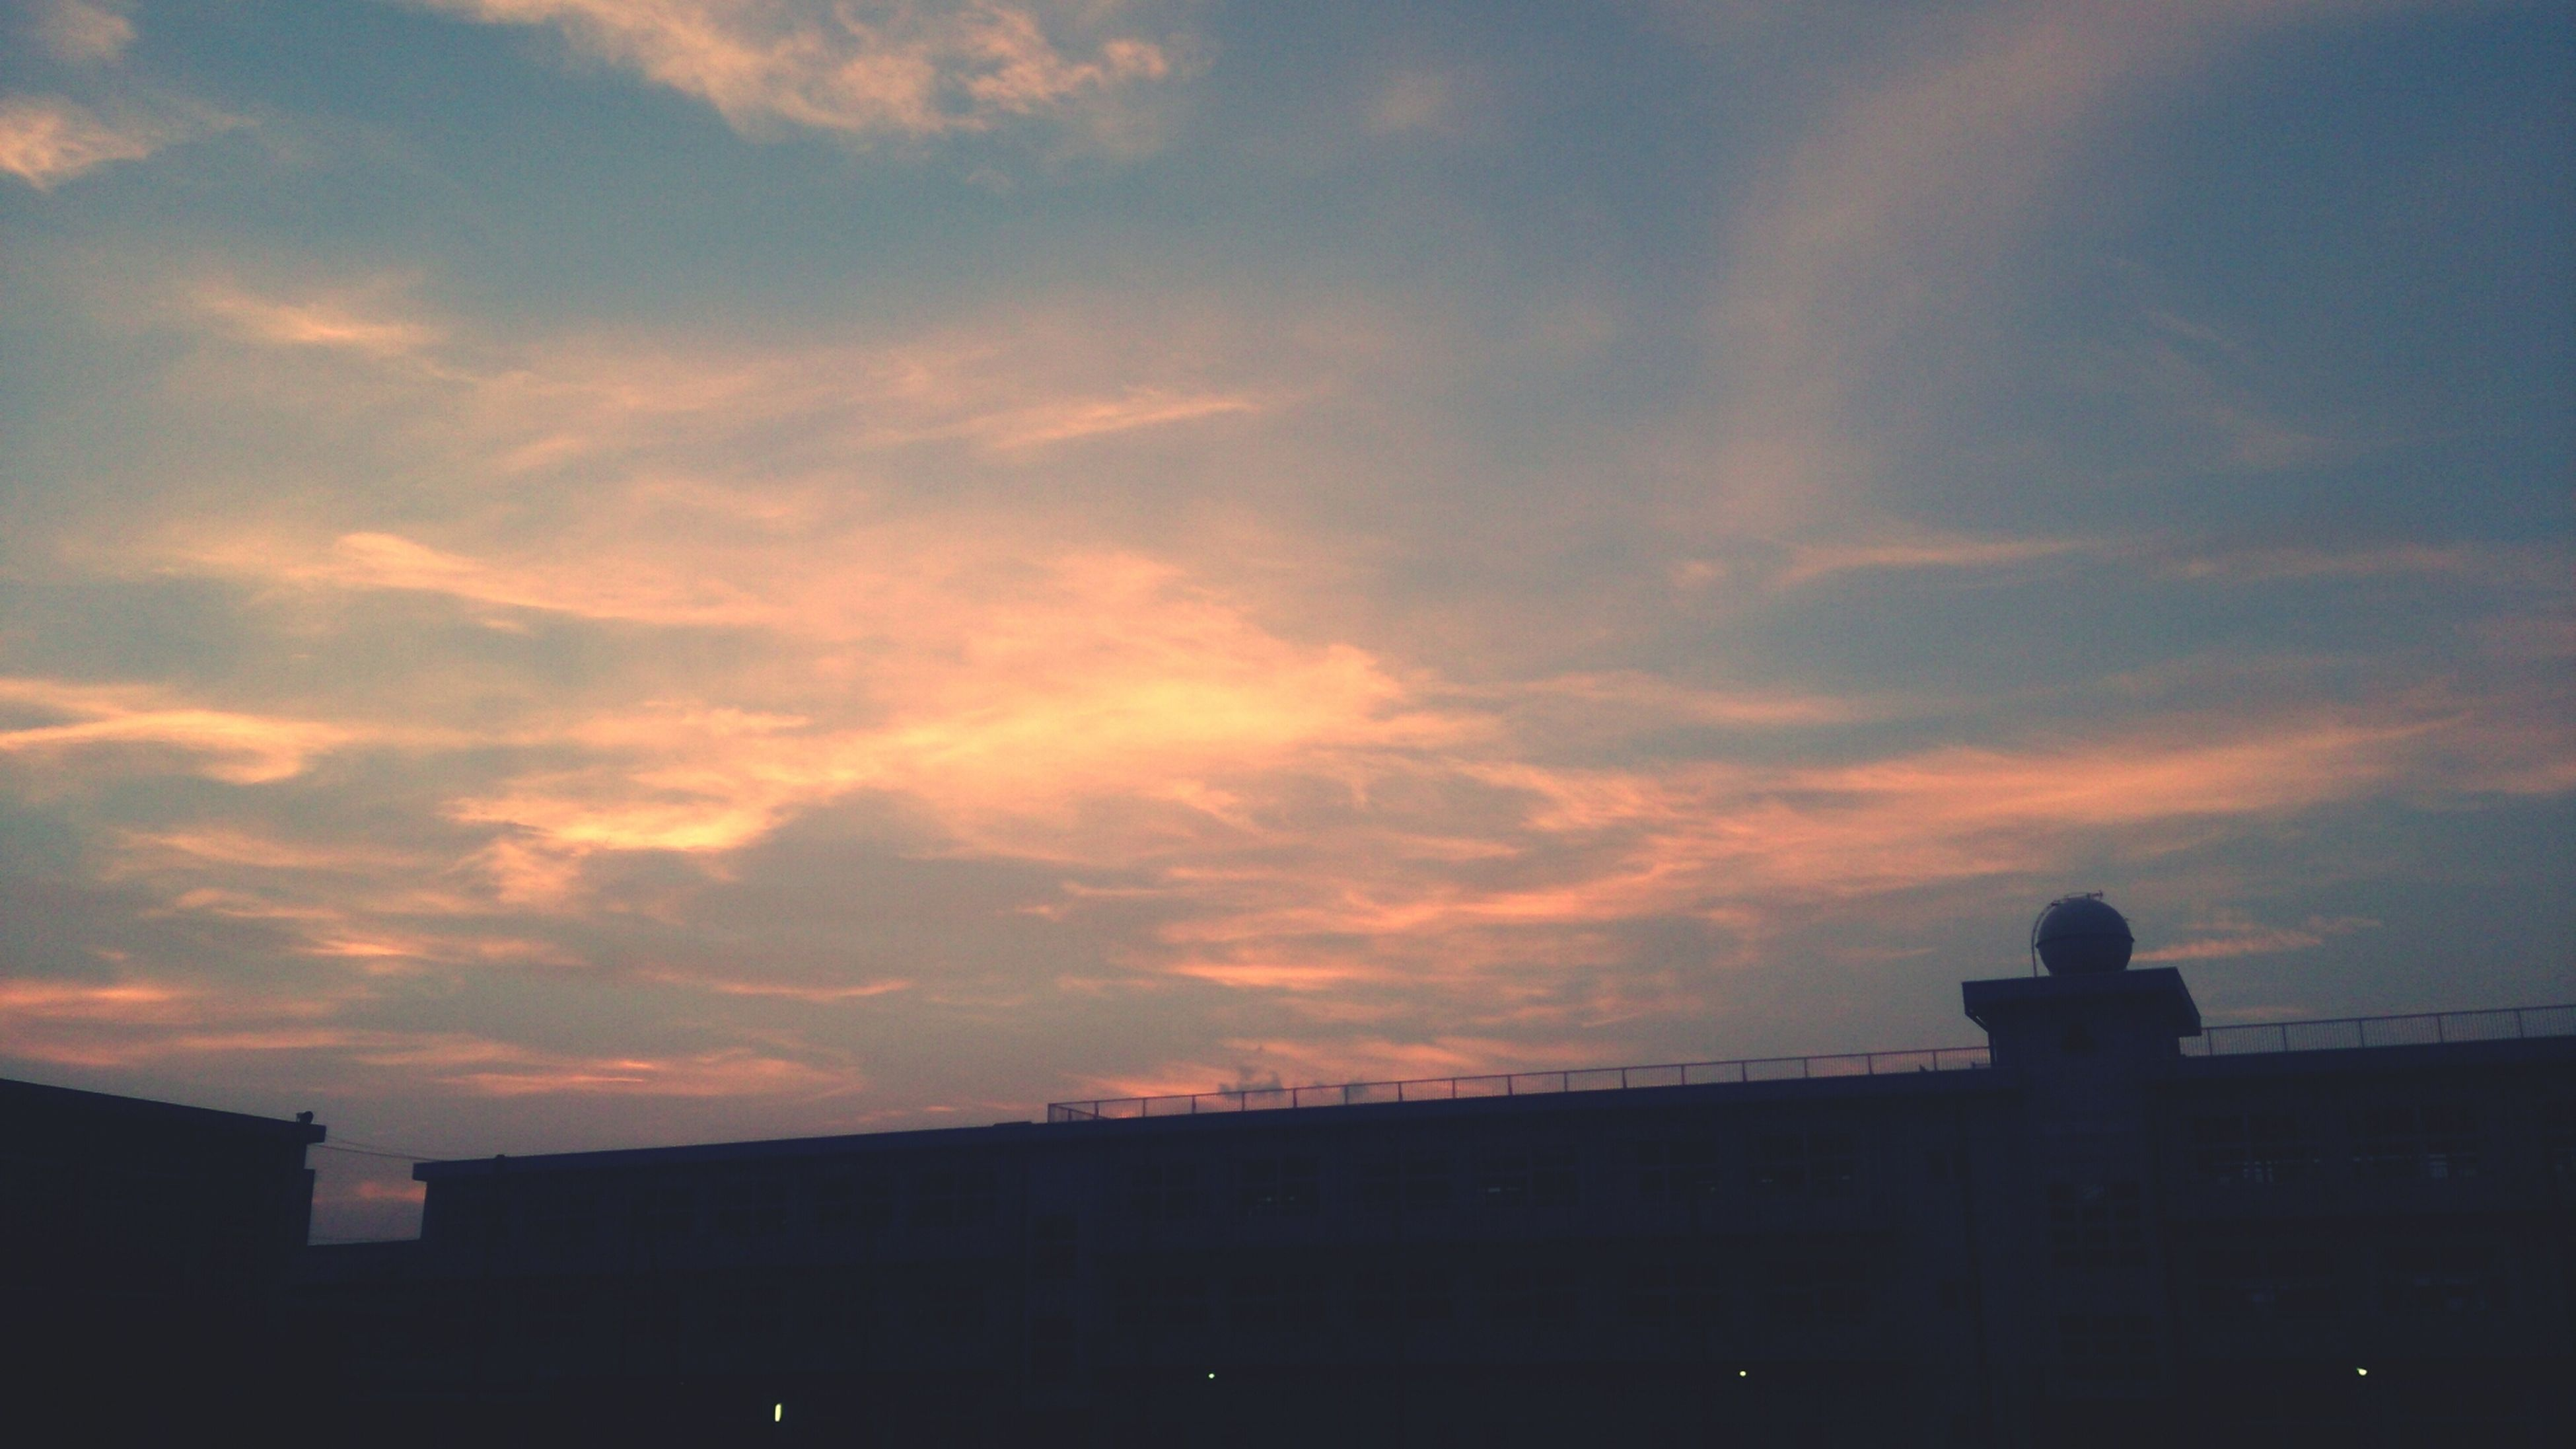 sunset, silhouette, architecture, built structure, building exterior, sky, orange color, cloud - sky, low angle view, cloud, building, dusk, outdoors, city, outline, nature, beauty in nature, dramatic sky, no people, dark